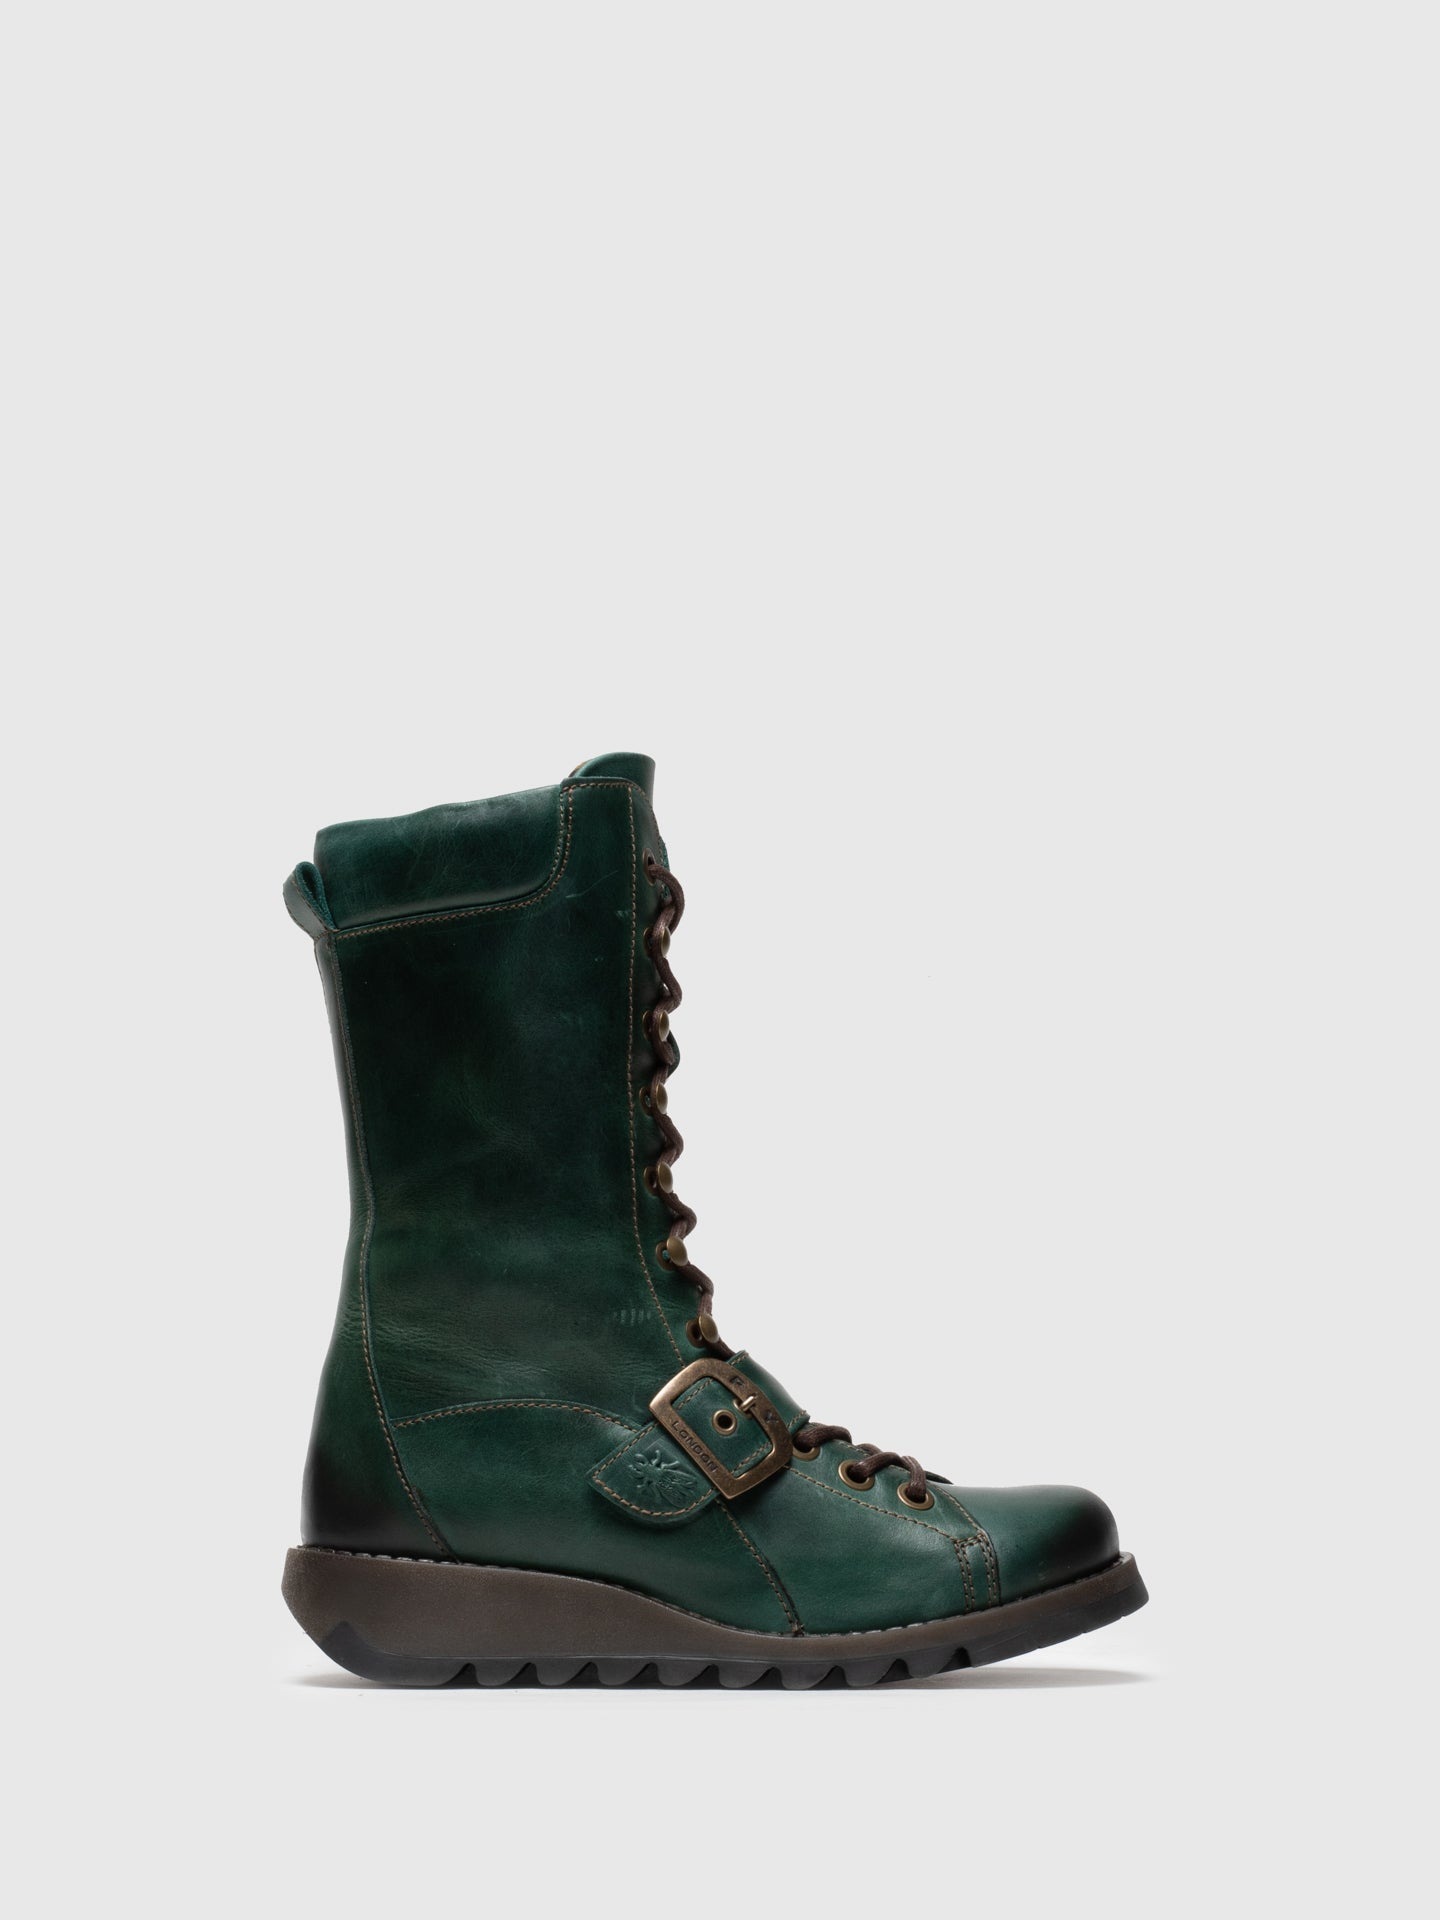 Fly London Green Lace-up Boots